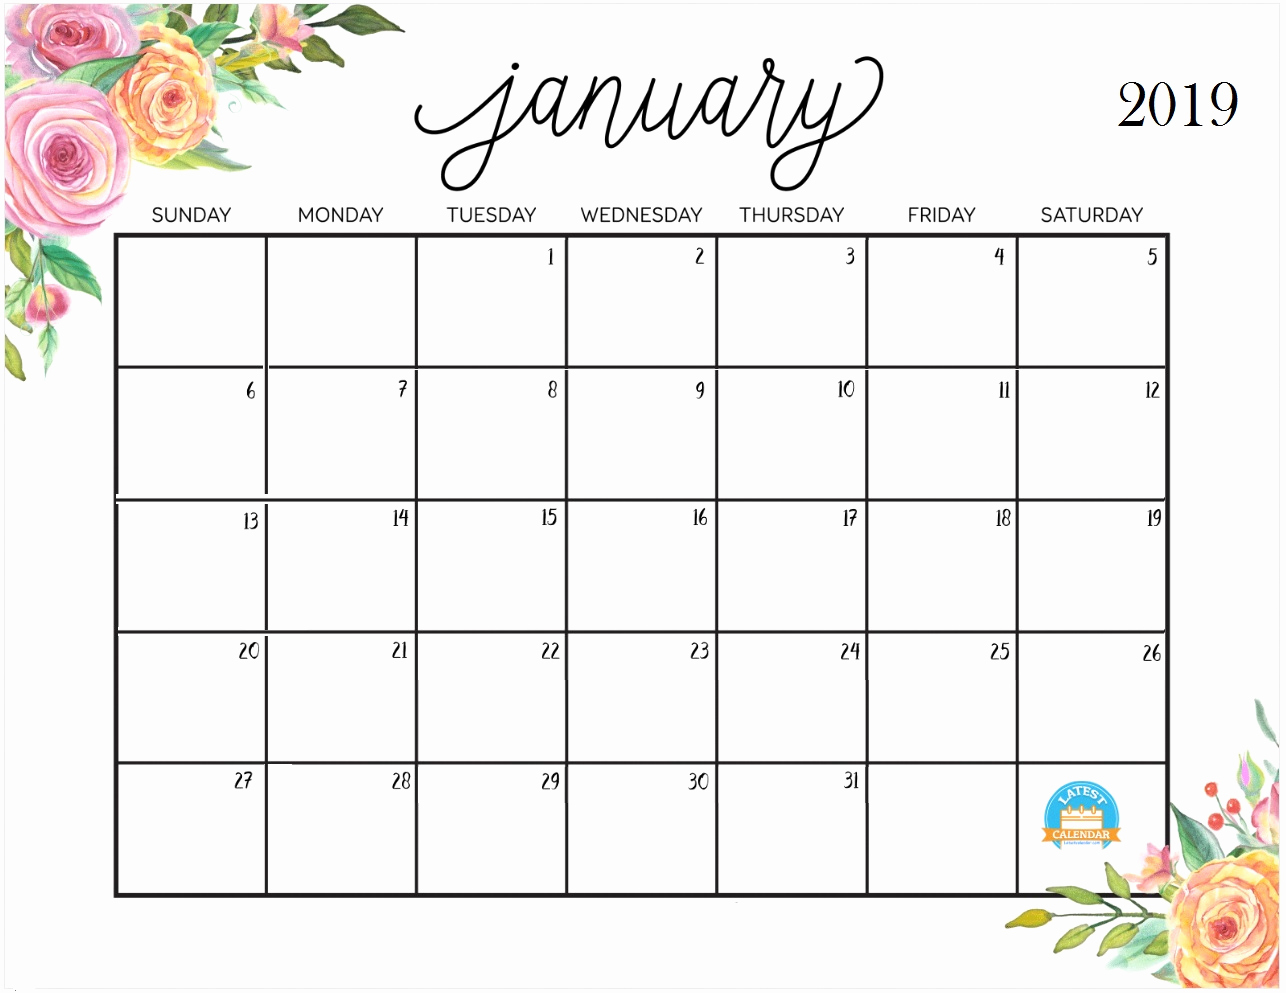 Floral Calendar January 2019 With Holidays